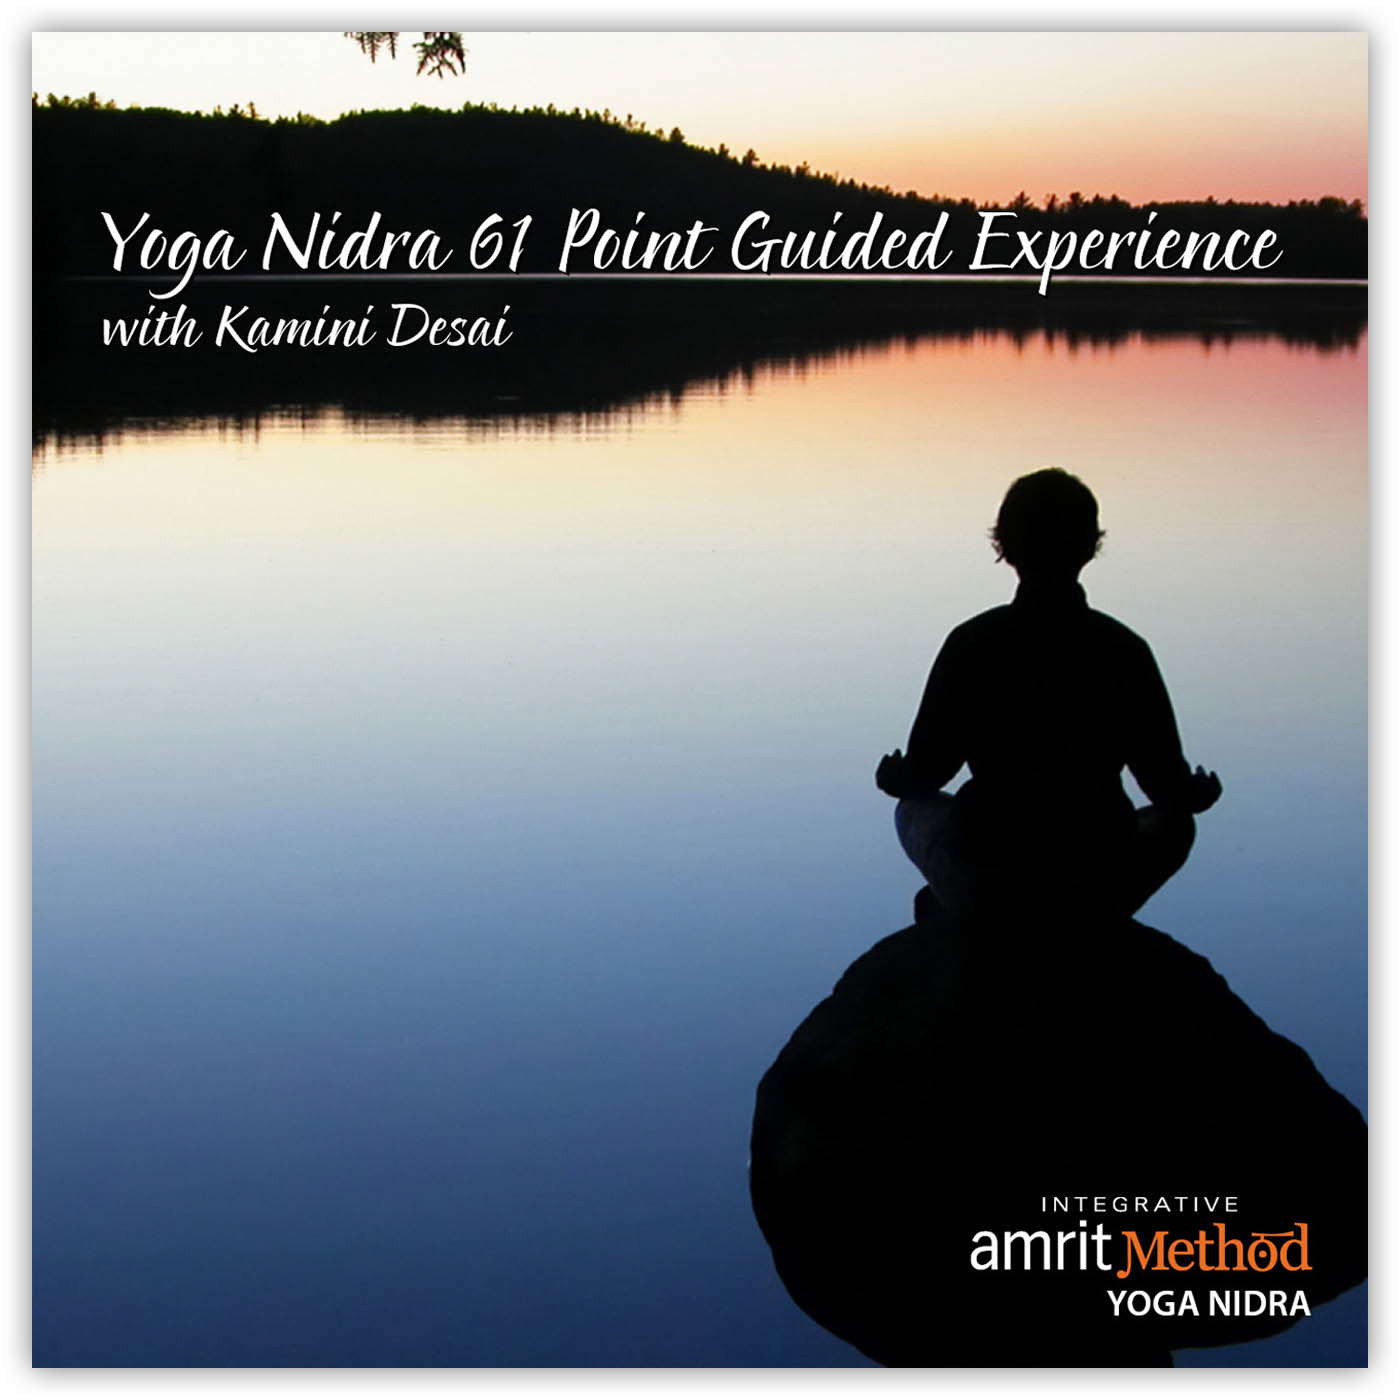 Yoga Nidra - 61 Point Guided Experience with Kamini Desai